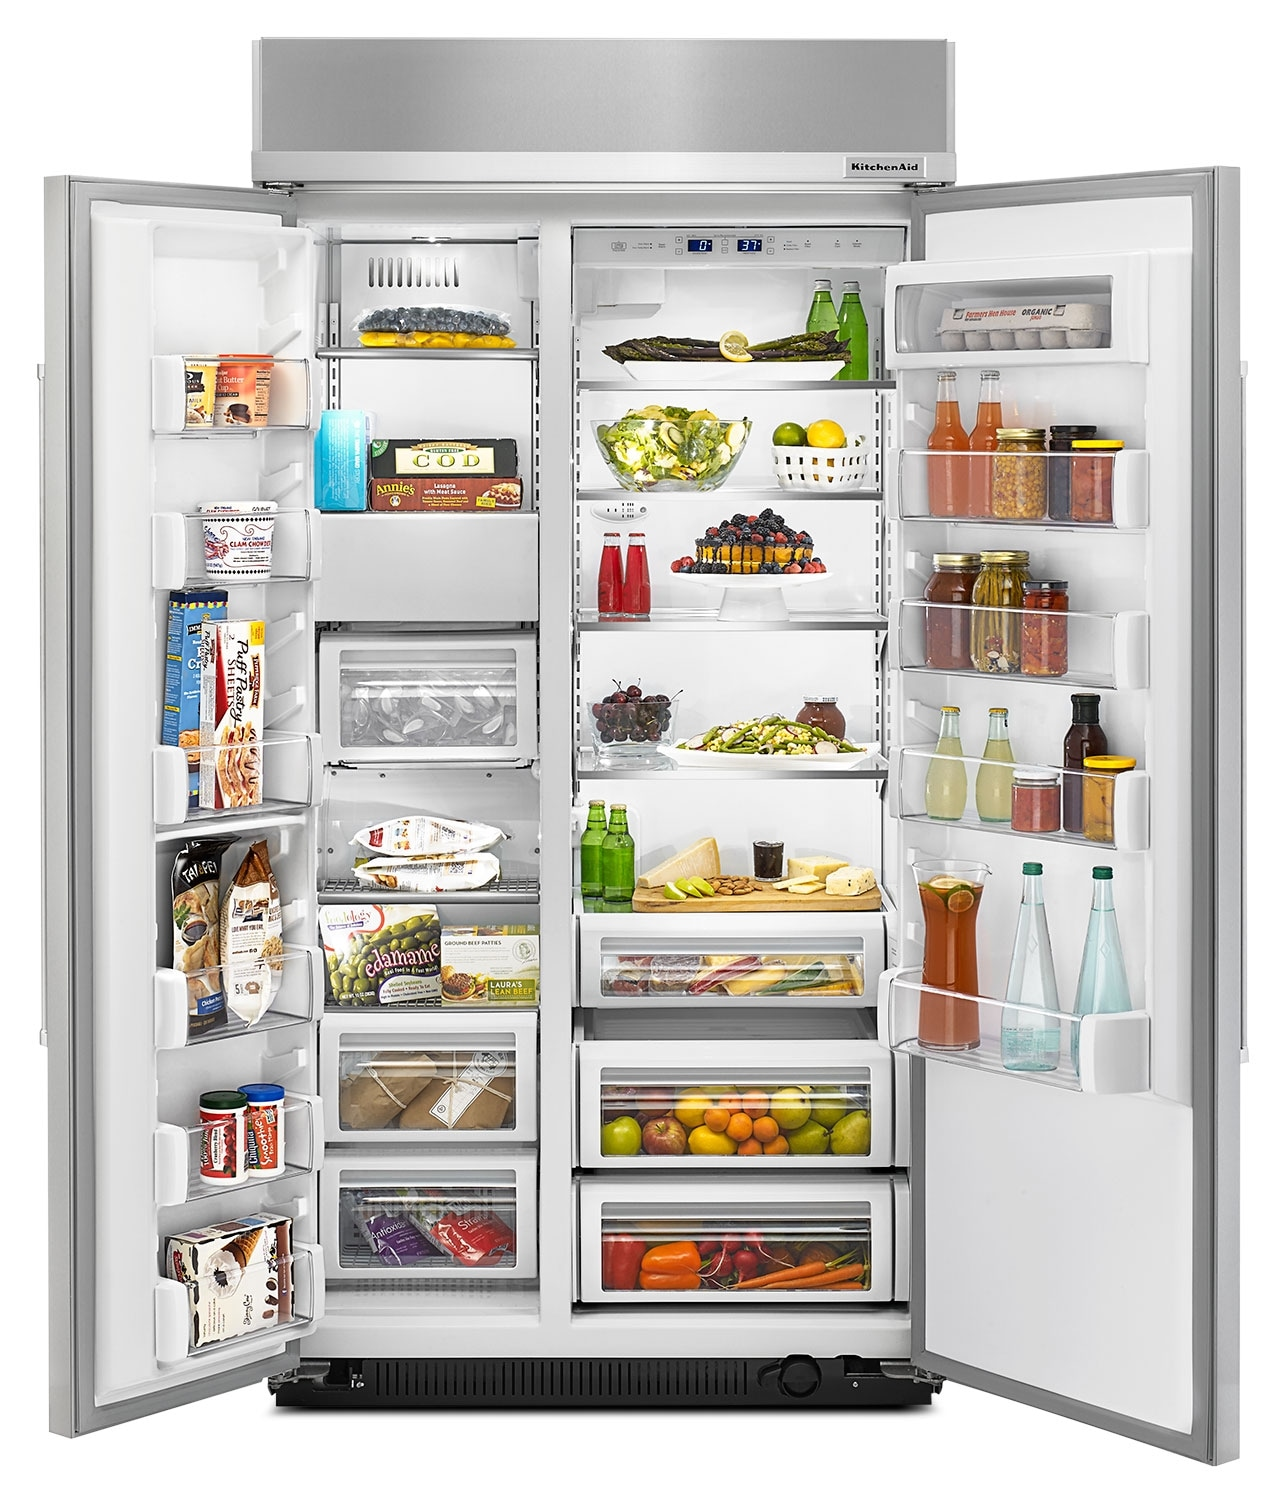 Kitchenaid Black Stainless Steel Side By Side Refrigerator: KitchenAid 25.5 Cu. Ft. Built-In Side-by-Side Refrigerator - Stainless Steel